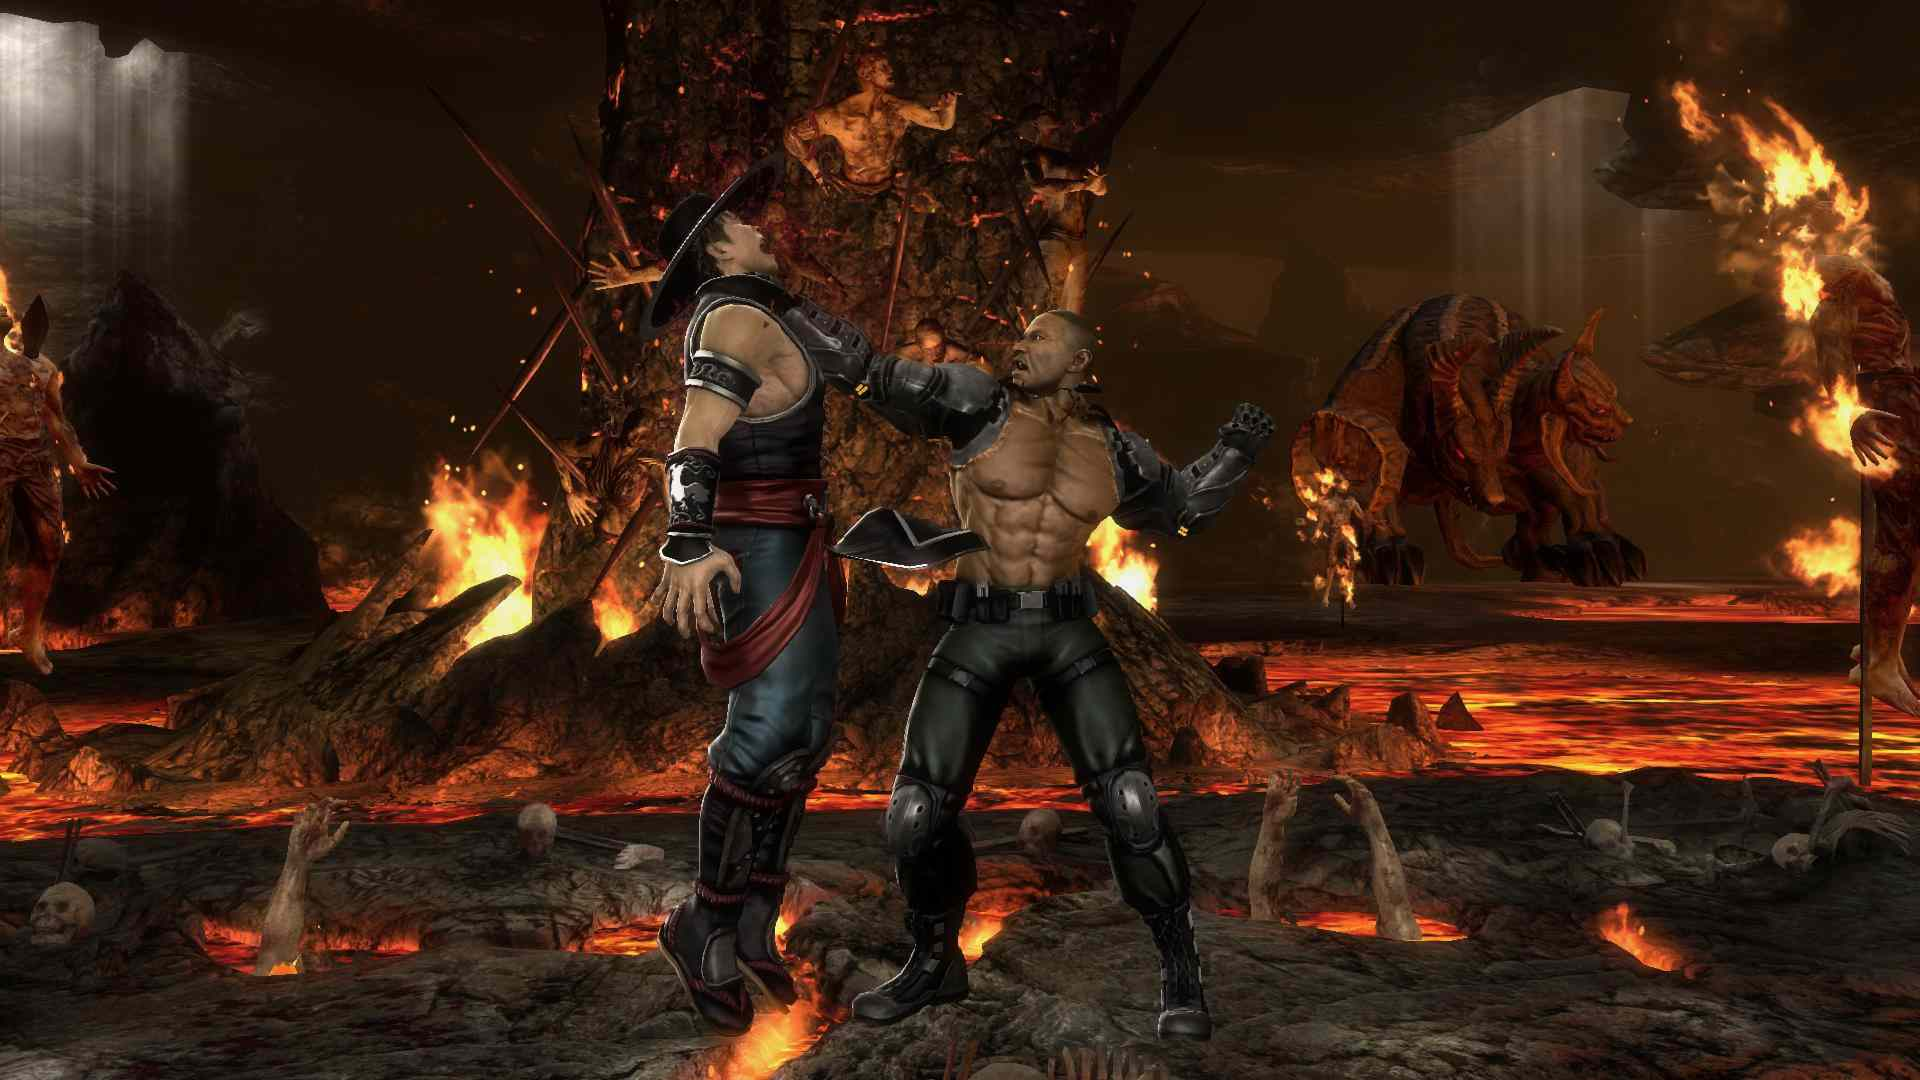 Mortal Kombat 2011 Xbox 360 Fatalities And Babalities